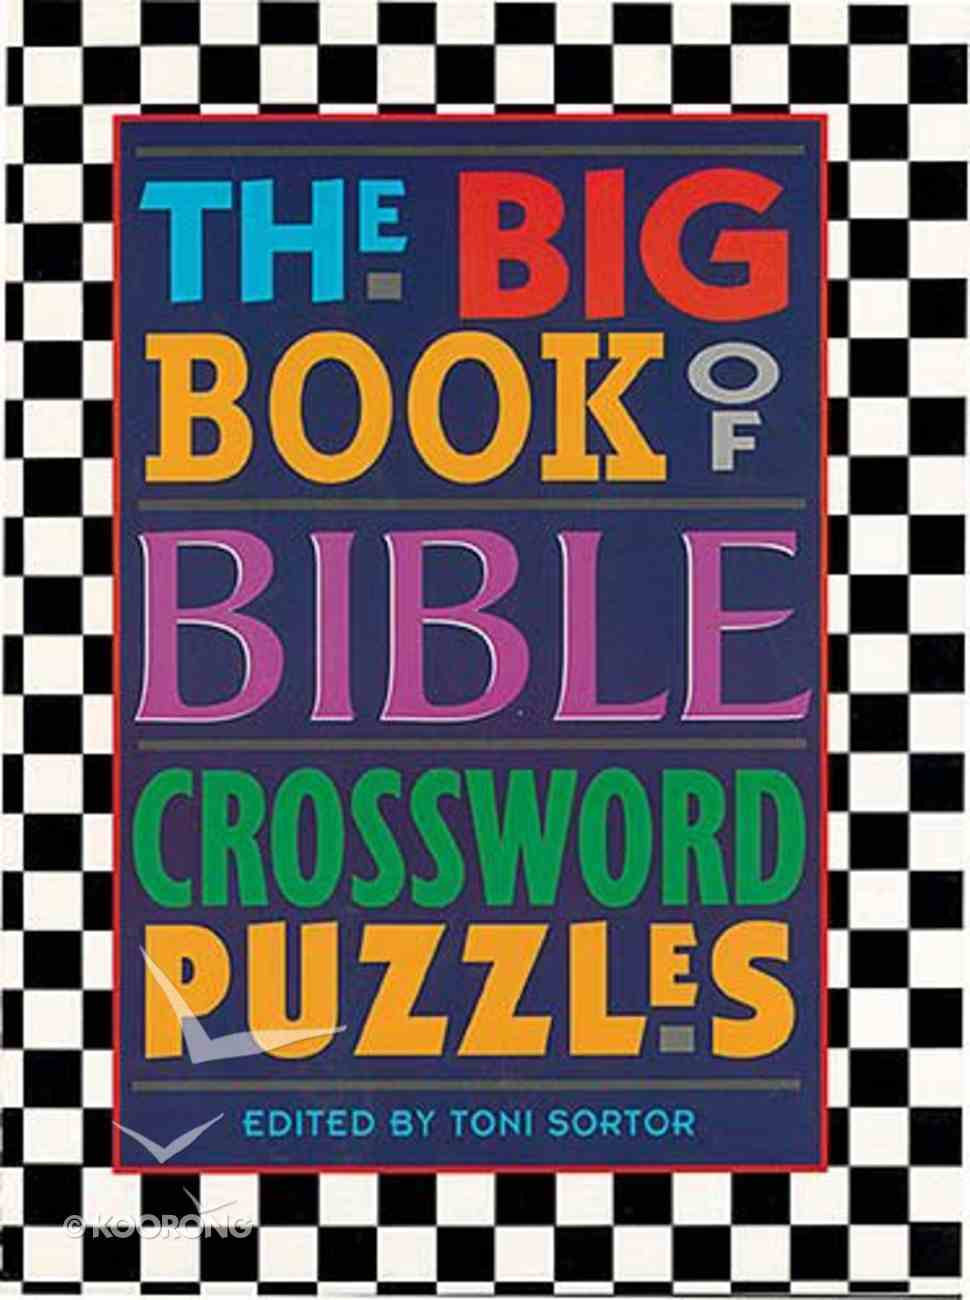 The Big Book Of Bible Crossword Puzzles By Toni Sortor Koorong